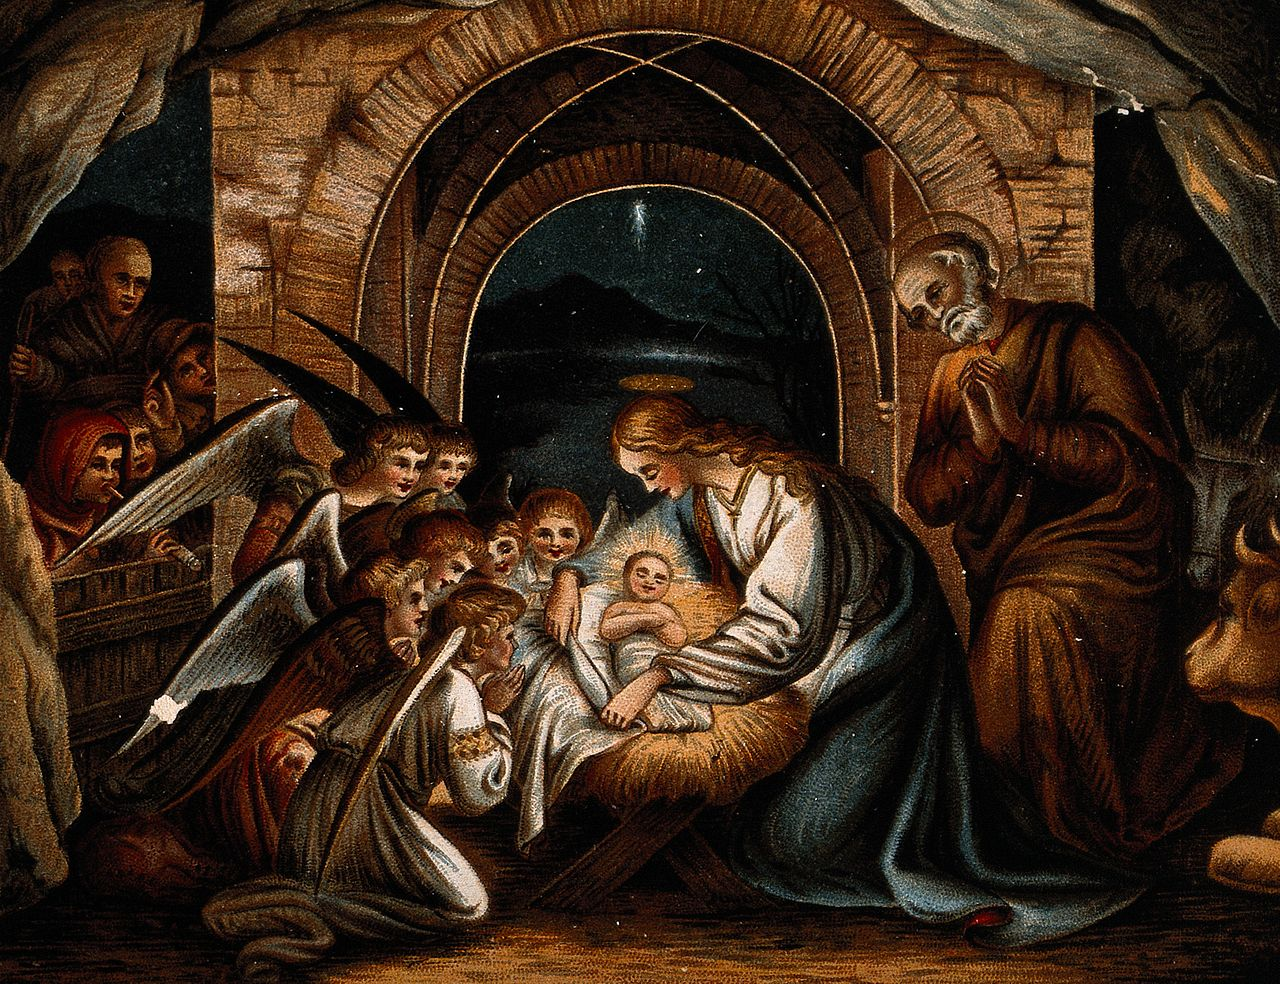 Angels pray at the birth of christ nativity wellcome v0034629 jpg